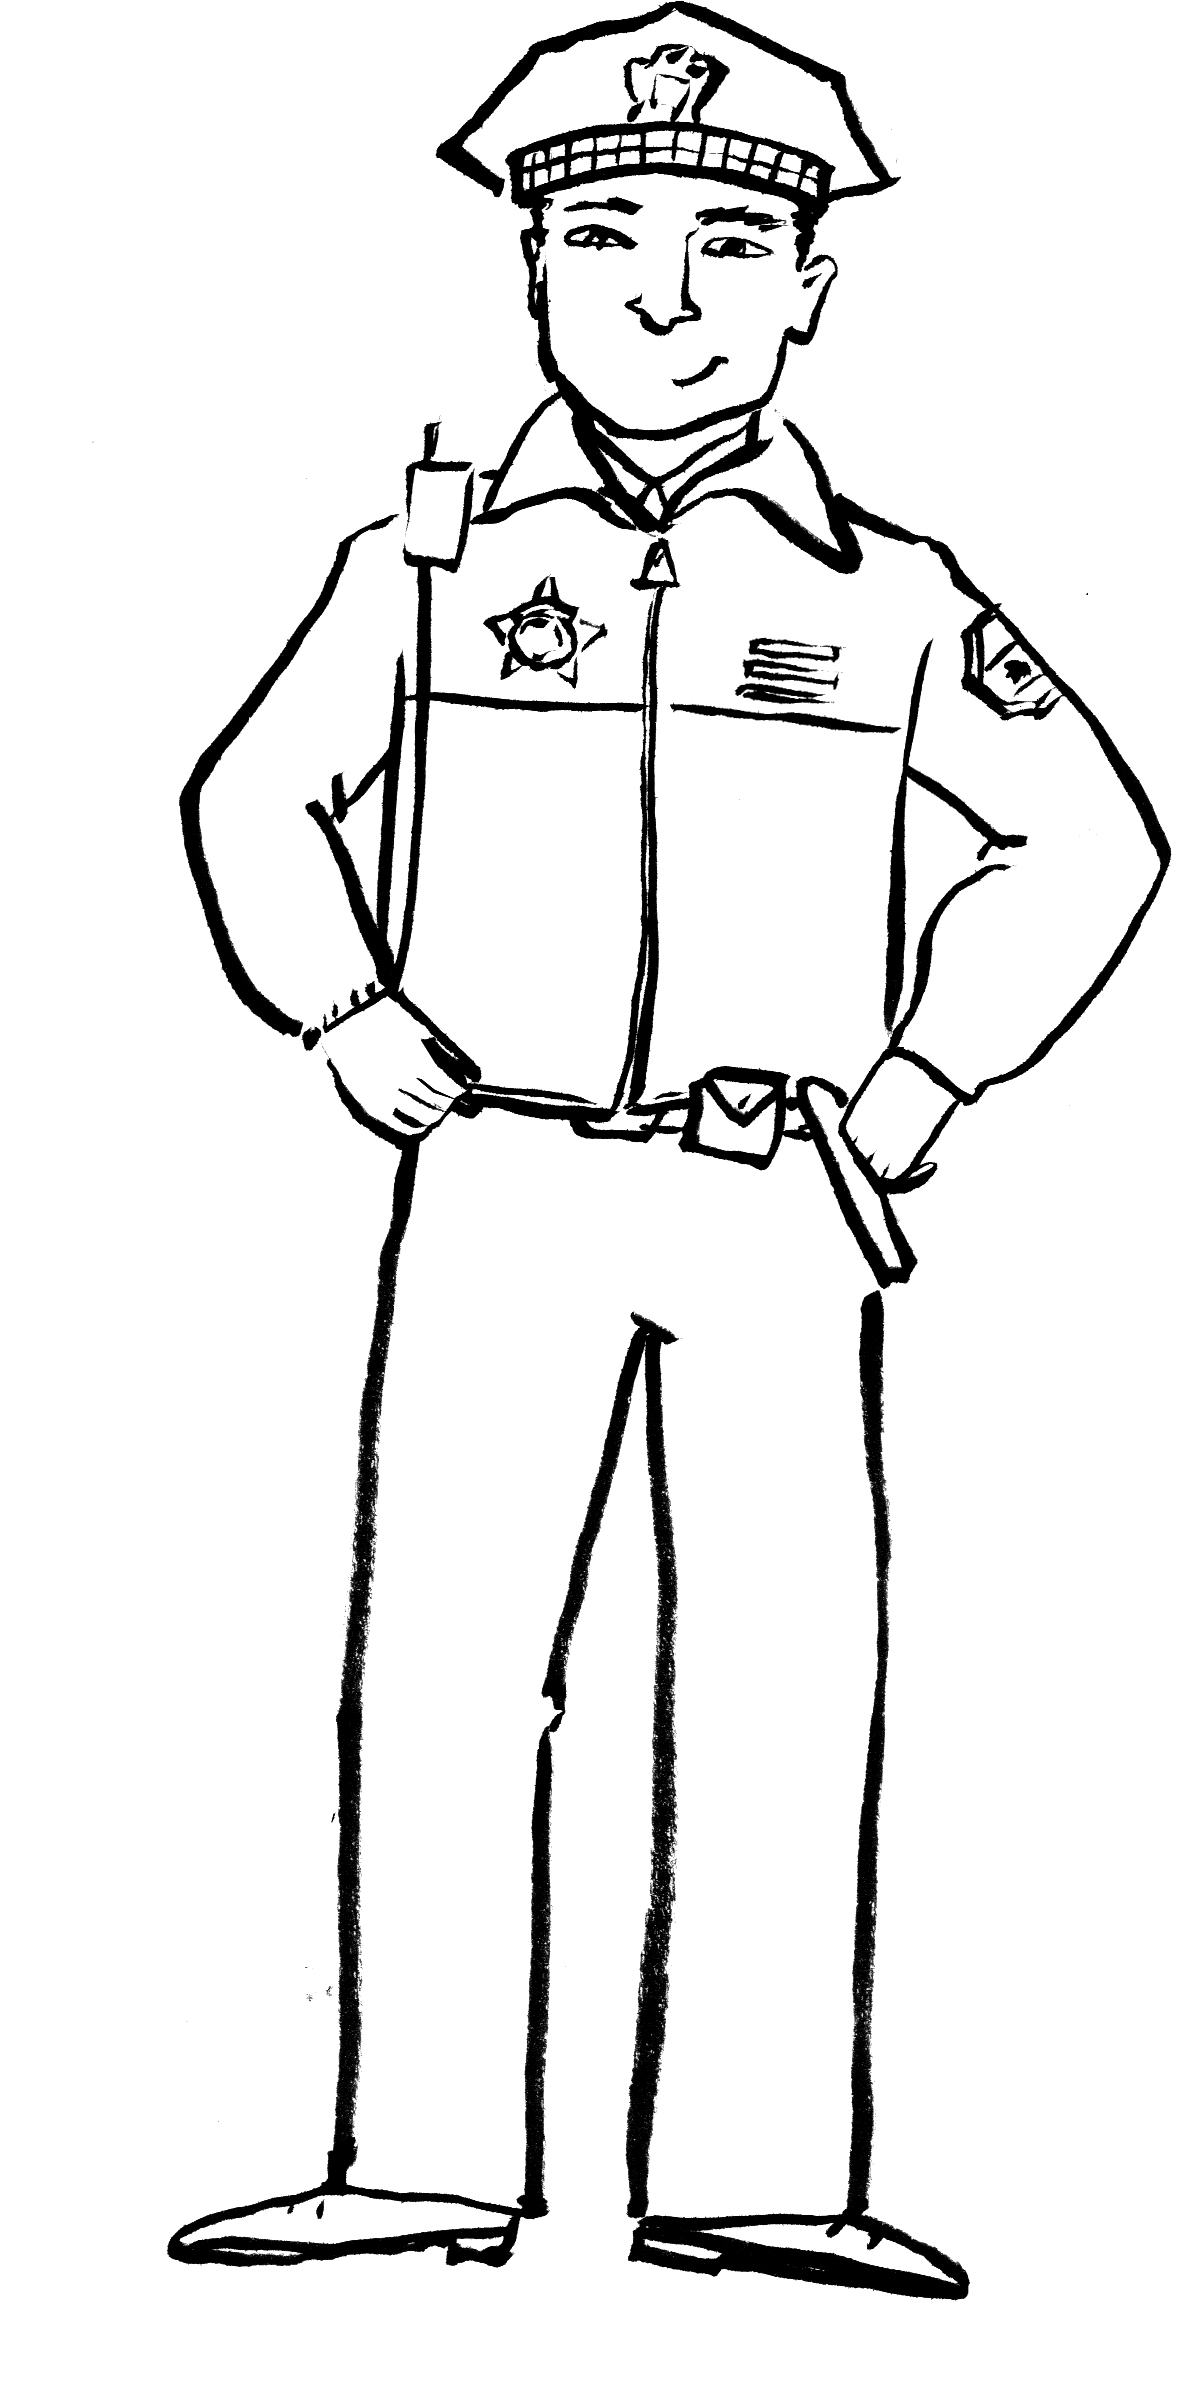 policeman coloring pages - photo#4